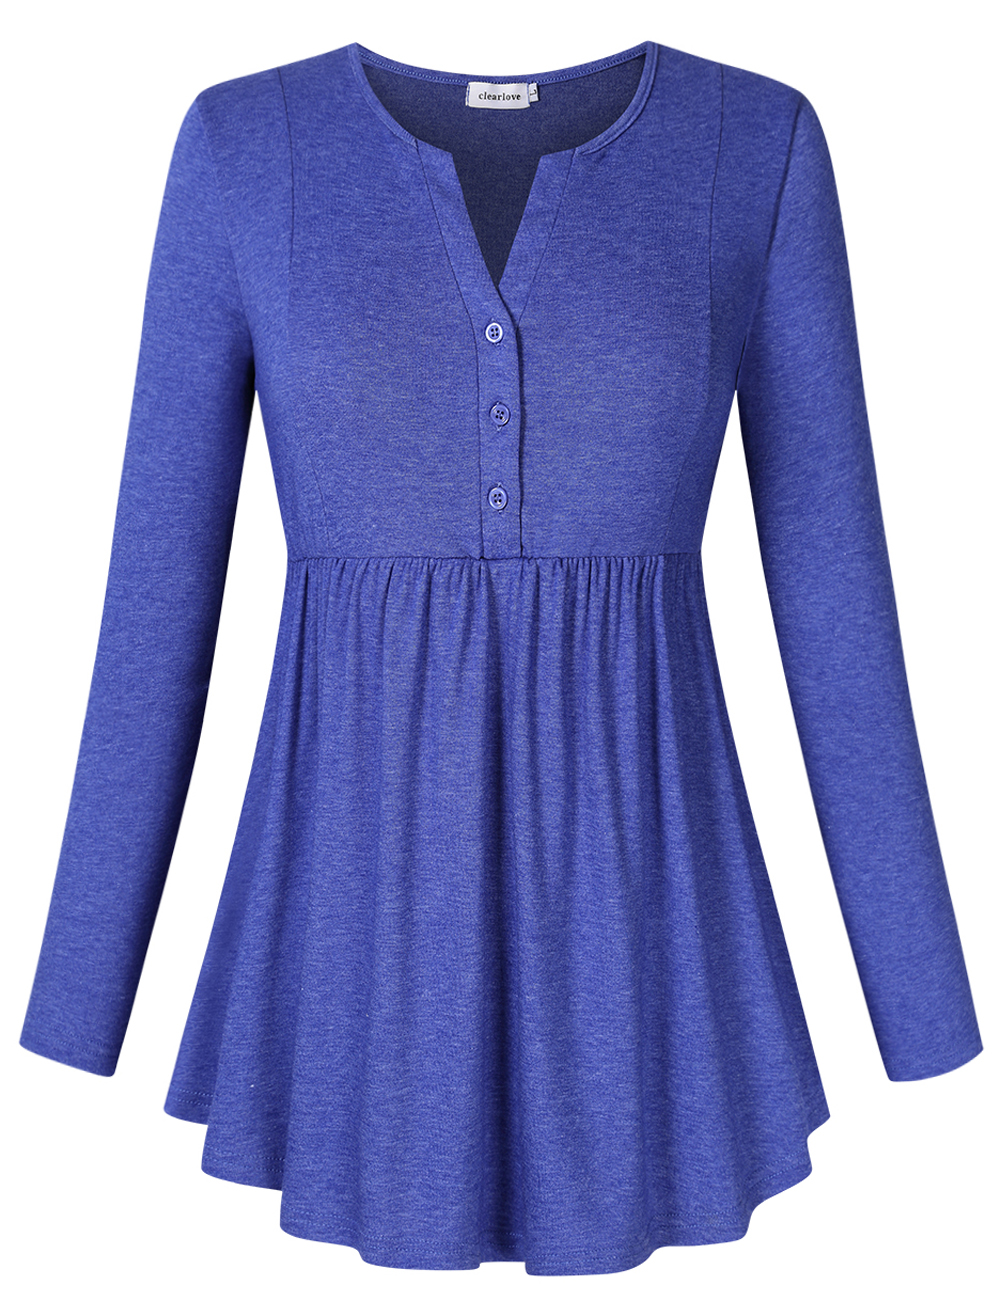 Clearlove Women's Long Sleeve Pleated Button-up V-Neck Shirts Solid Flare Tunic Tops